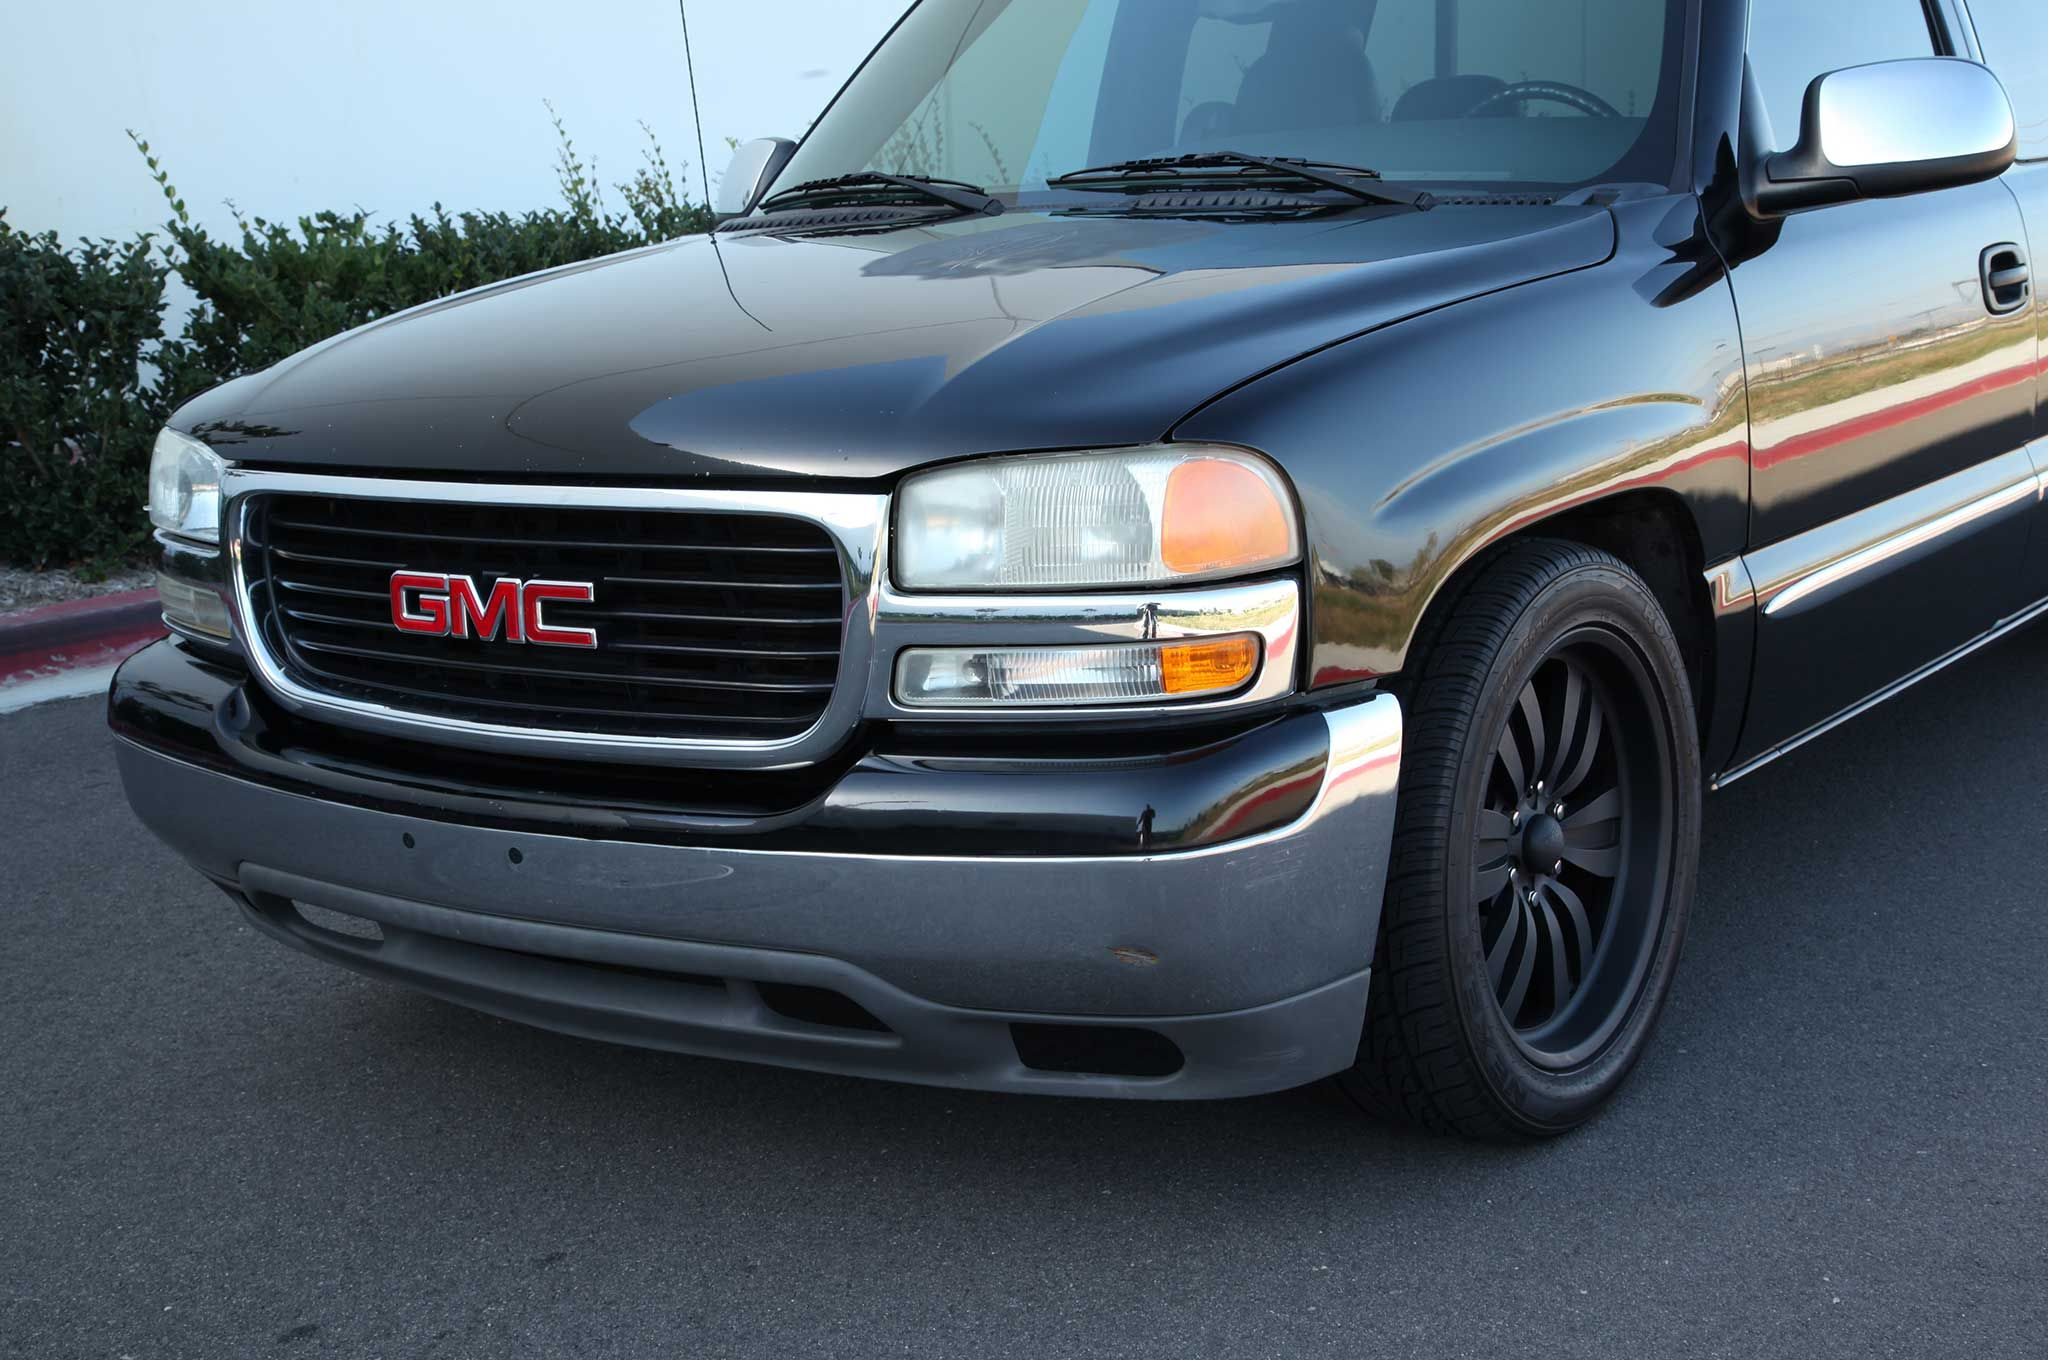 2002 GMC Sierra Frontend Conversion - Old Dog New Tricks